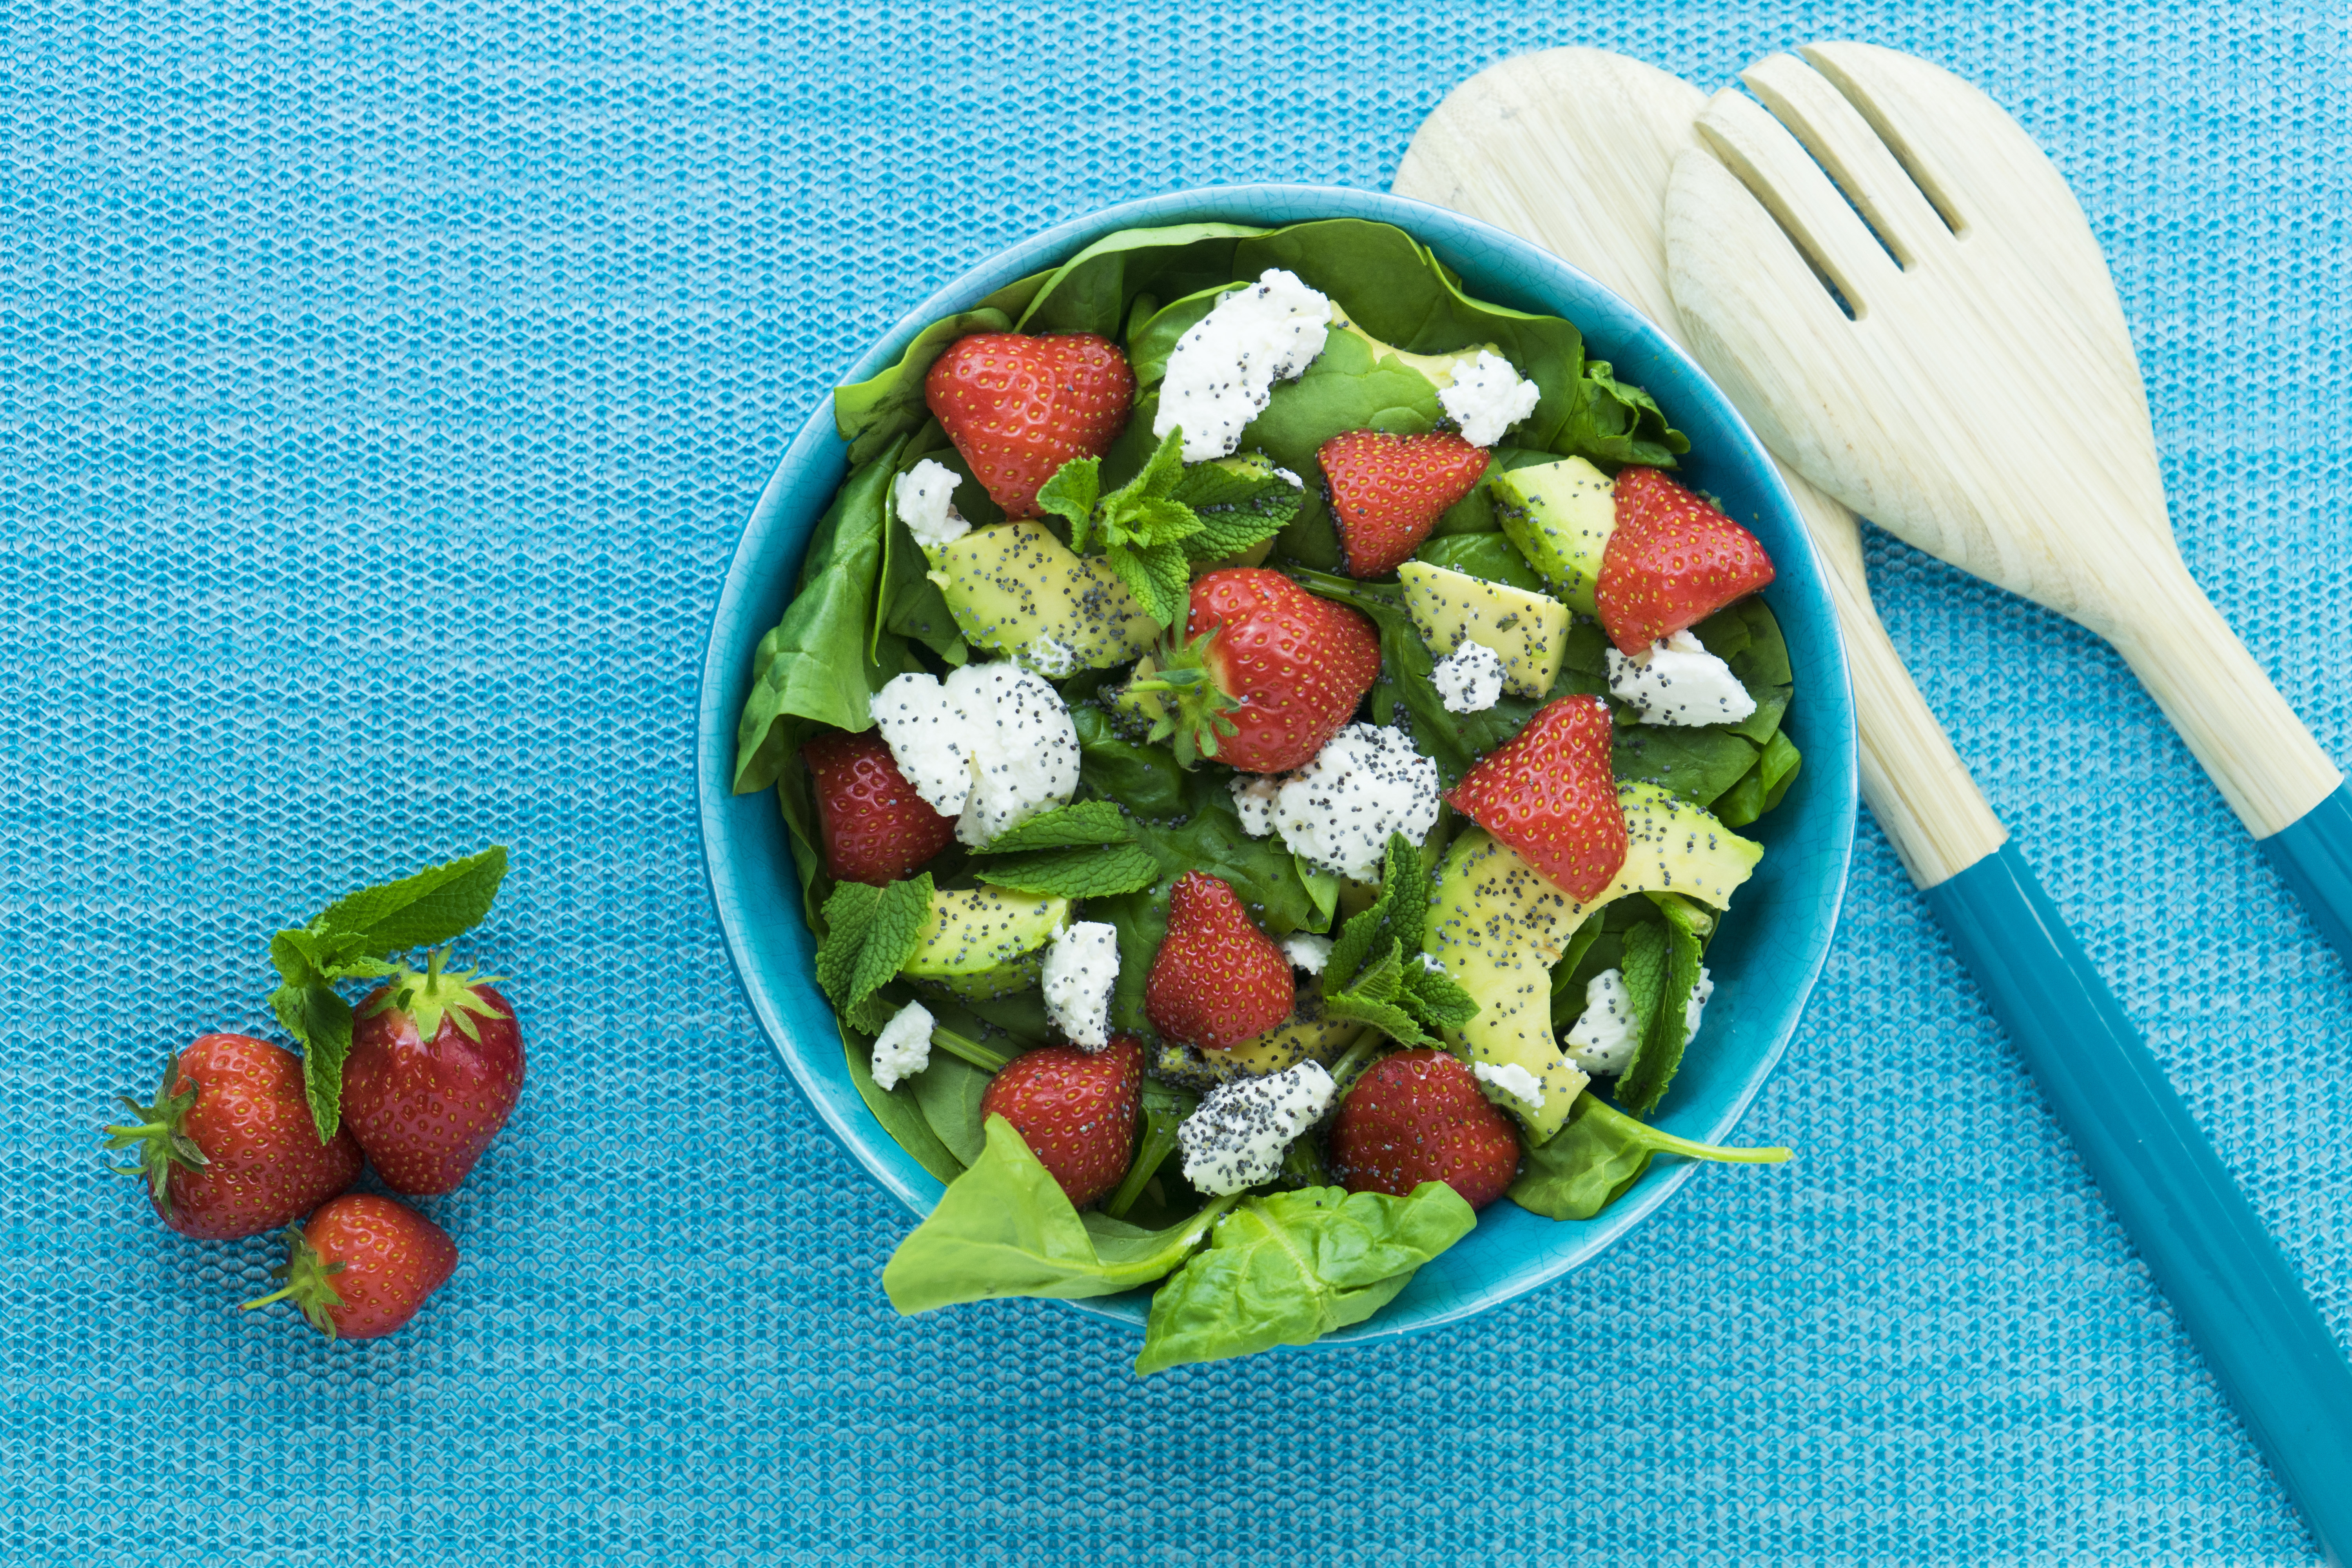 Strawberry, Avocado, Spinach and Ricotta Salad